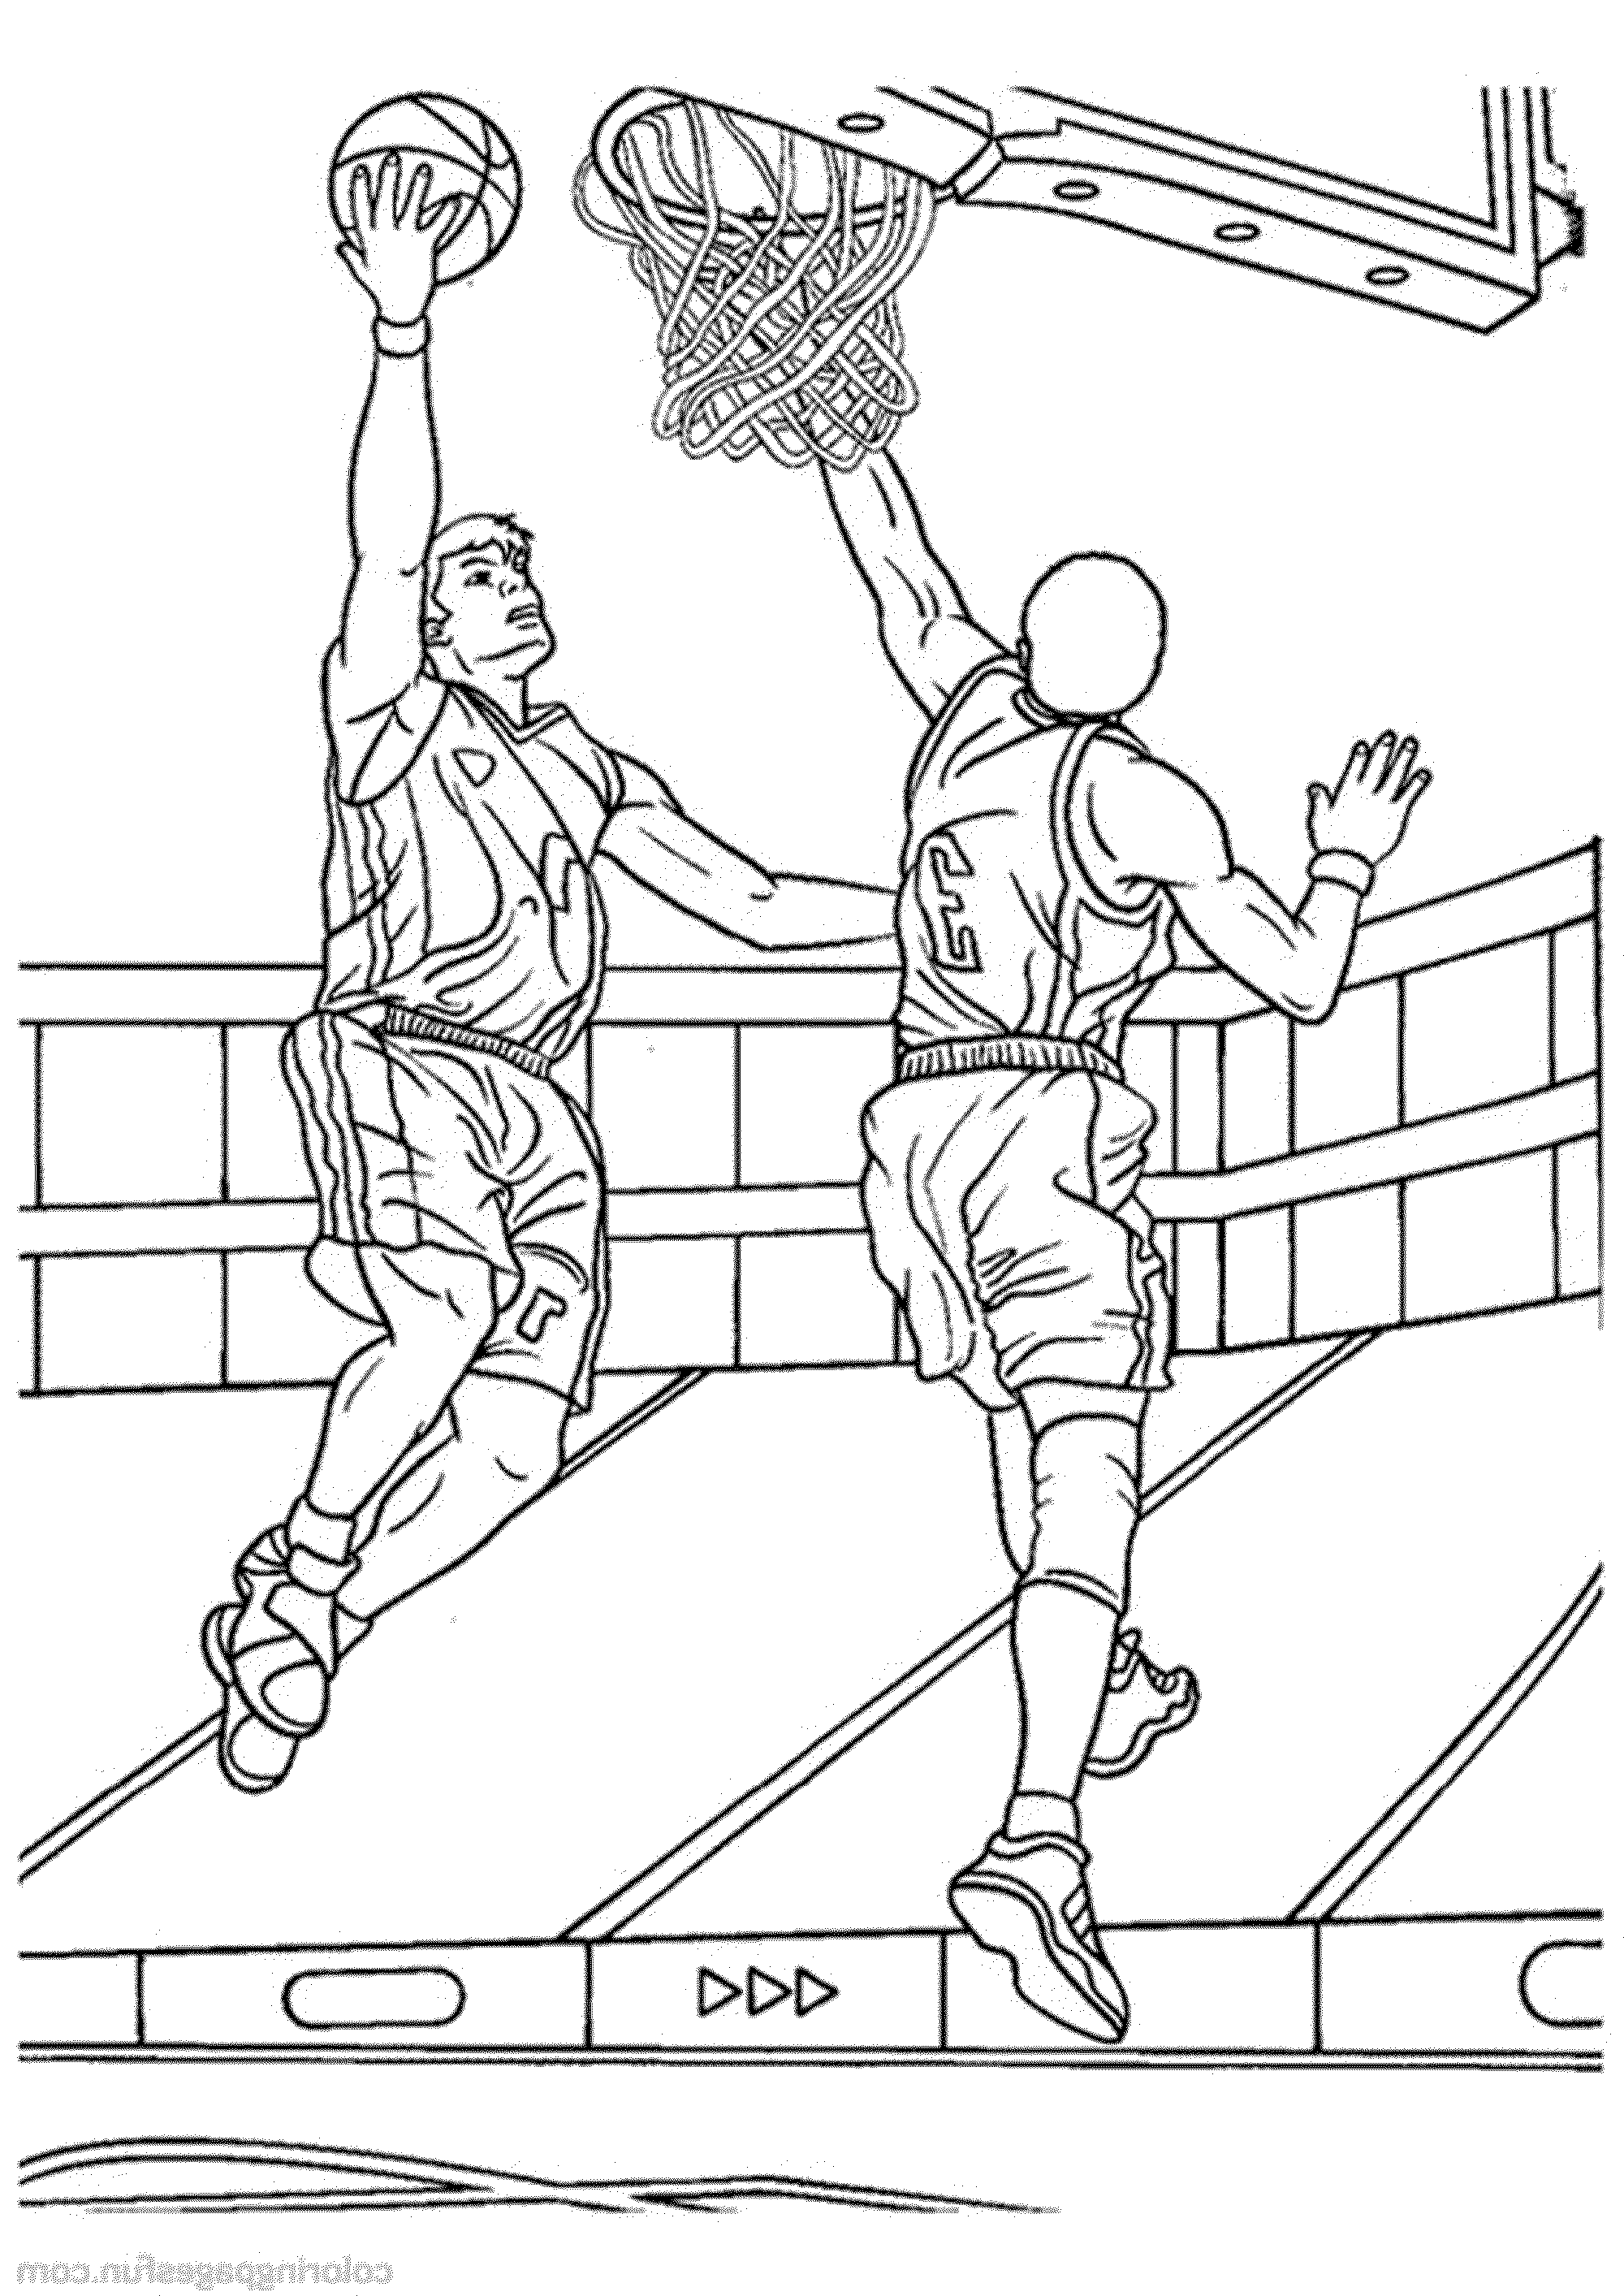 coloring pictures basketball basketball for kids basketball kids coloring pages basketball coloring pictures